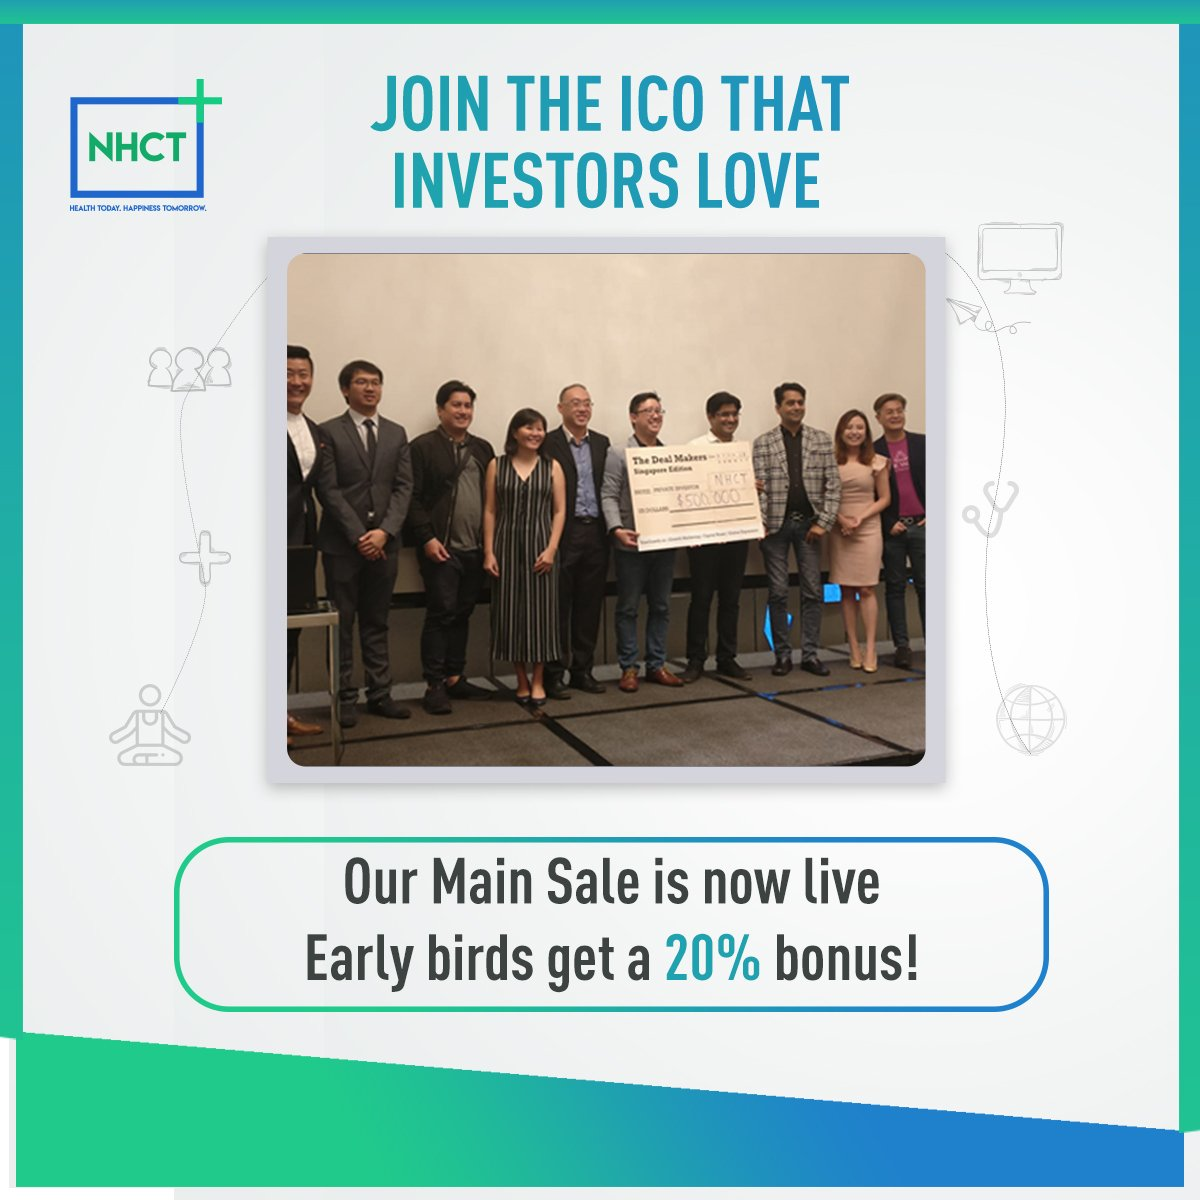 Have you visited our website yet? Our Main Sale is live and ongoing with a 20% Bonus for early birds. Hurry and join!  #innovation #NHCT #ethereum #MainSale #TokenSale #satoshi<br>http://pic.twitter.com/QdFPiZkY8I